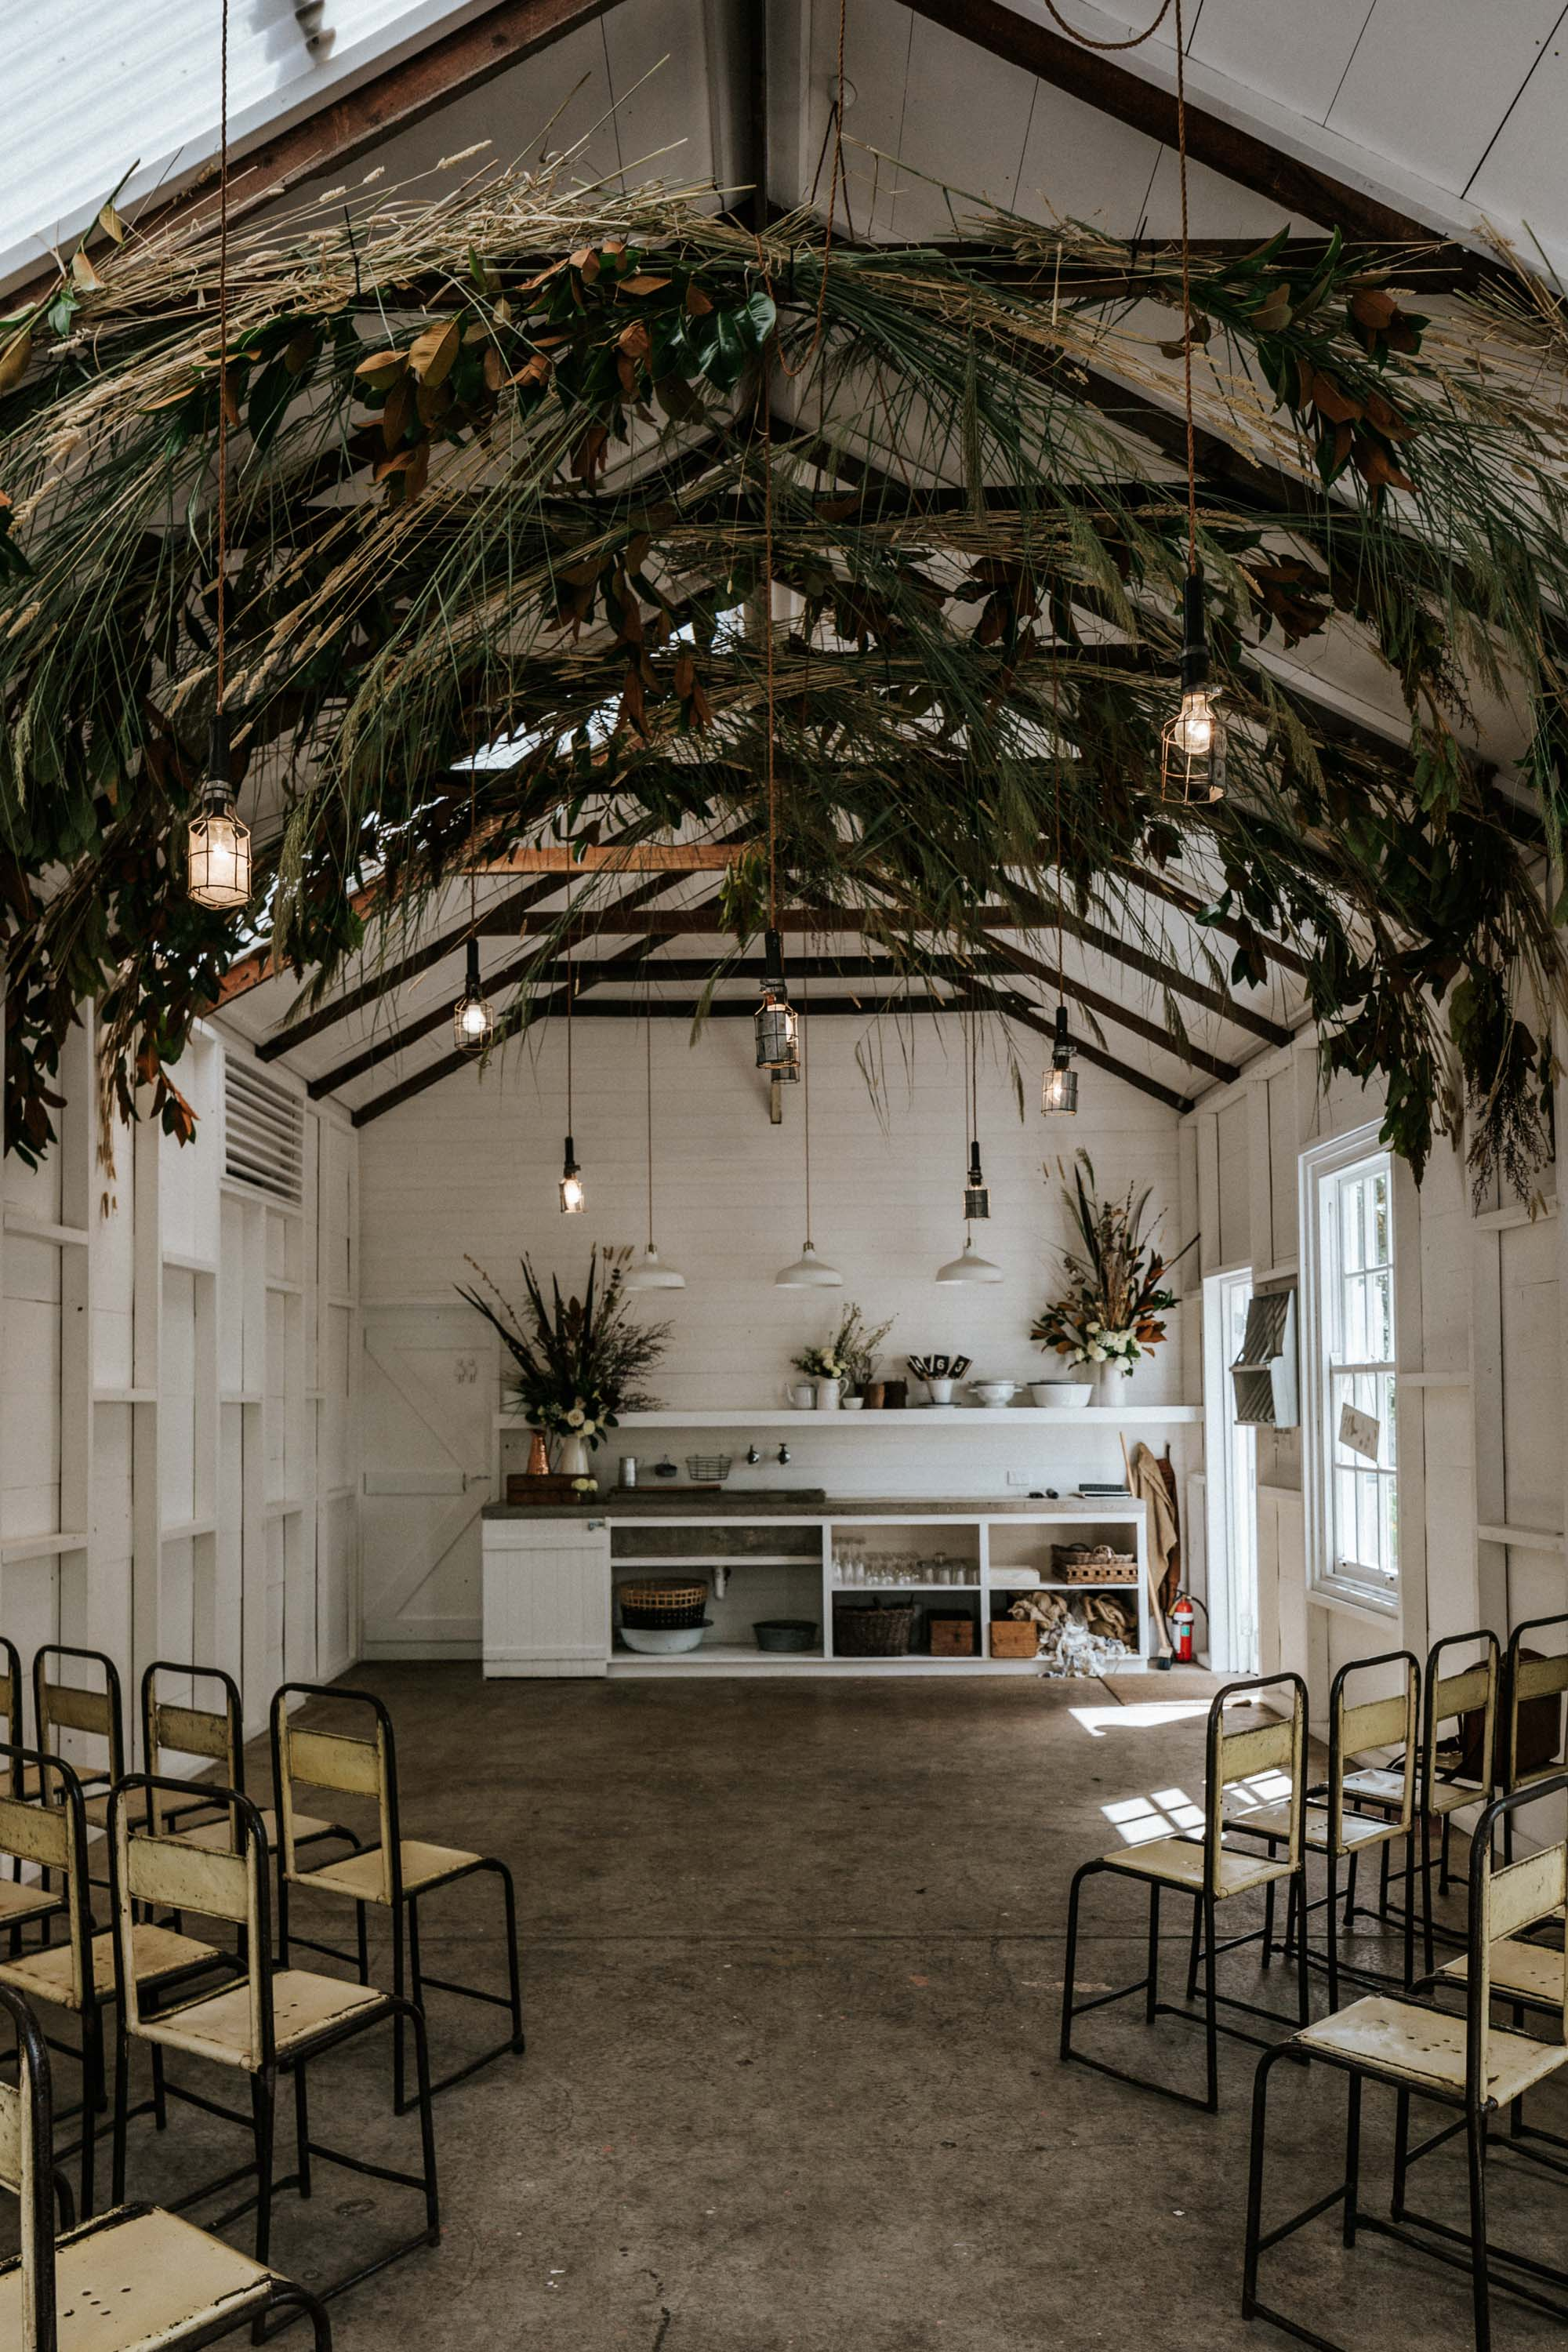 The Estate Trentham   Lynda Gardener has transformed this beautiful old farmhouse to a place of wedding dreams. A barn sits alongside the house perfect for small gatherings and weddings overlooking the veggie gardens and mini orchard.  View Website